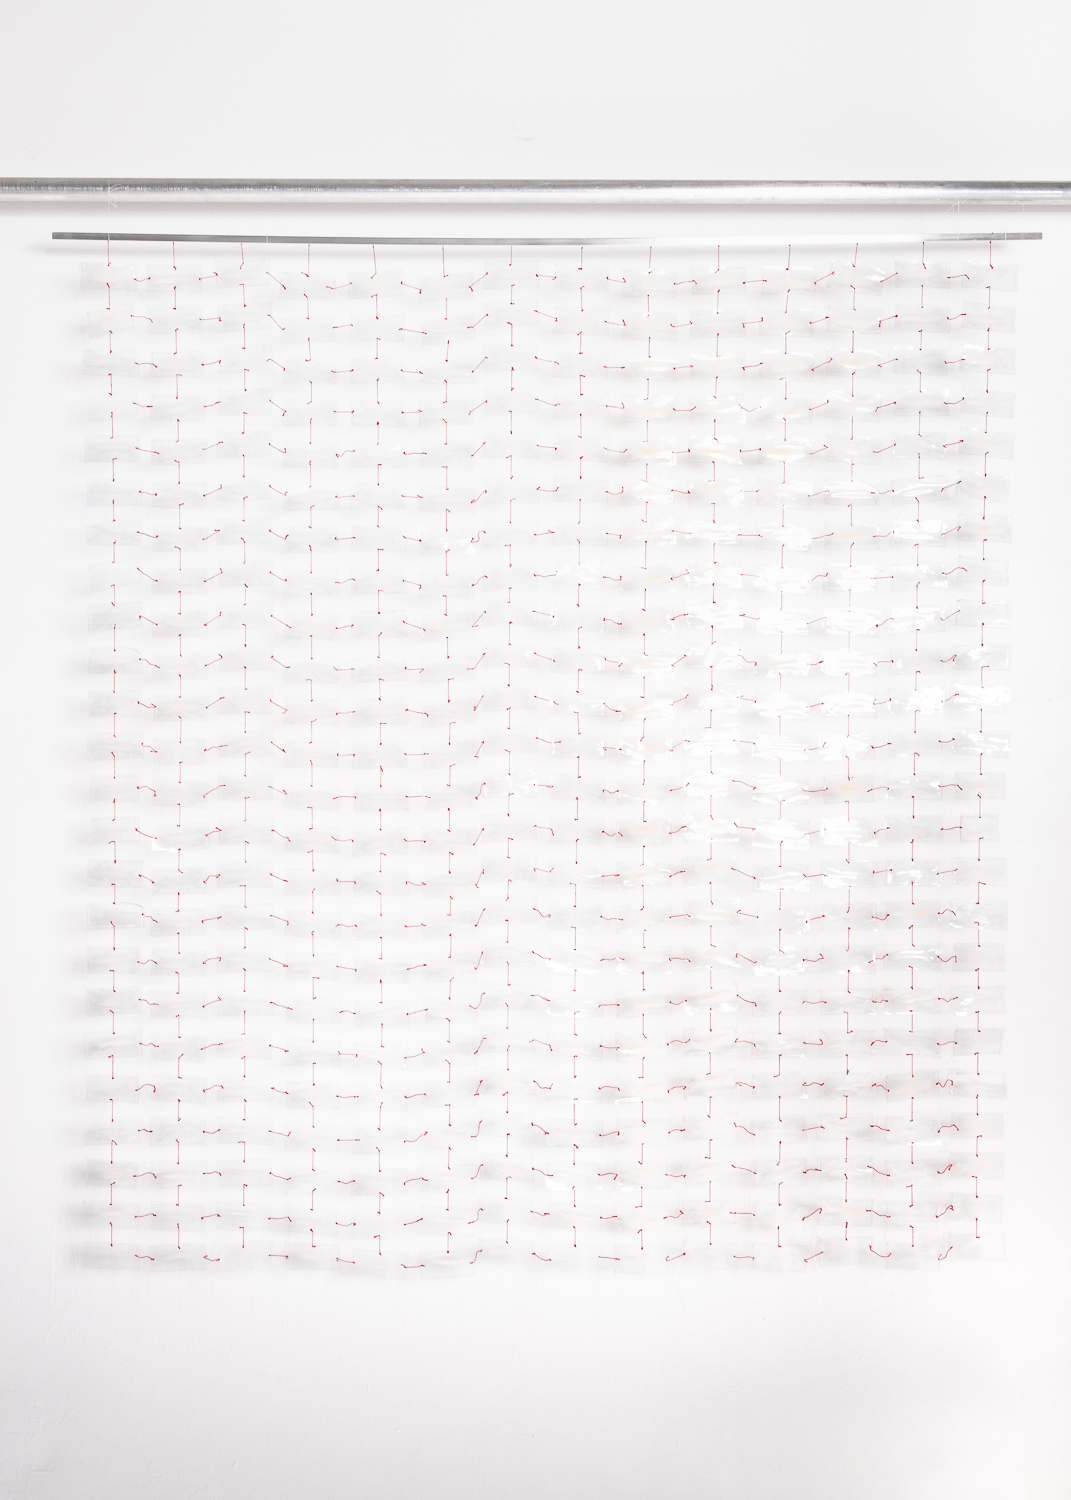 "Communion Thin, 2016, Maureen Gruben (Inuvialuk), Polar bear guard hair, vinyl, cotton thread, 70"" x 76"", POR"